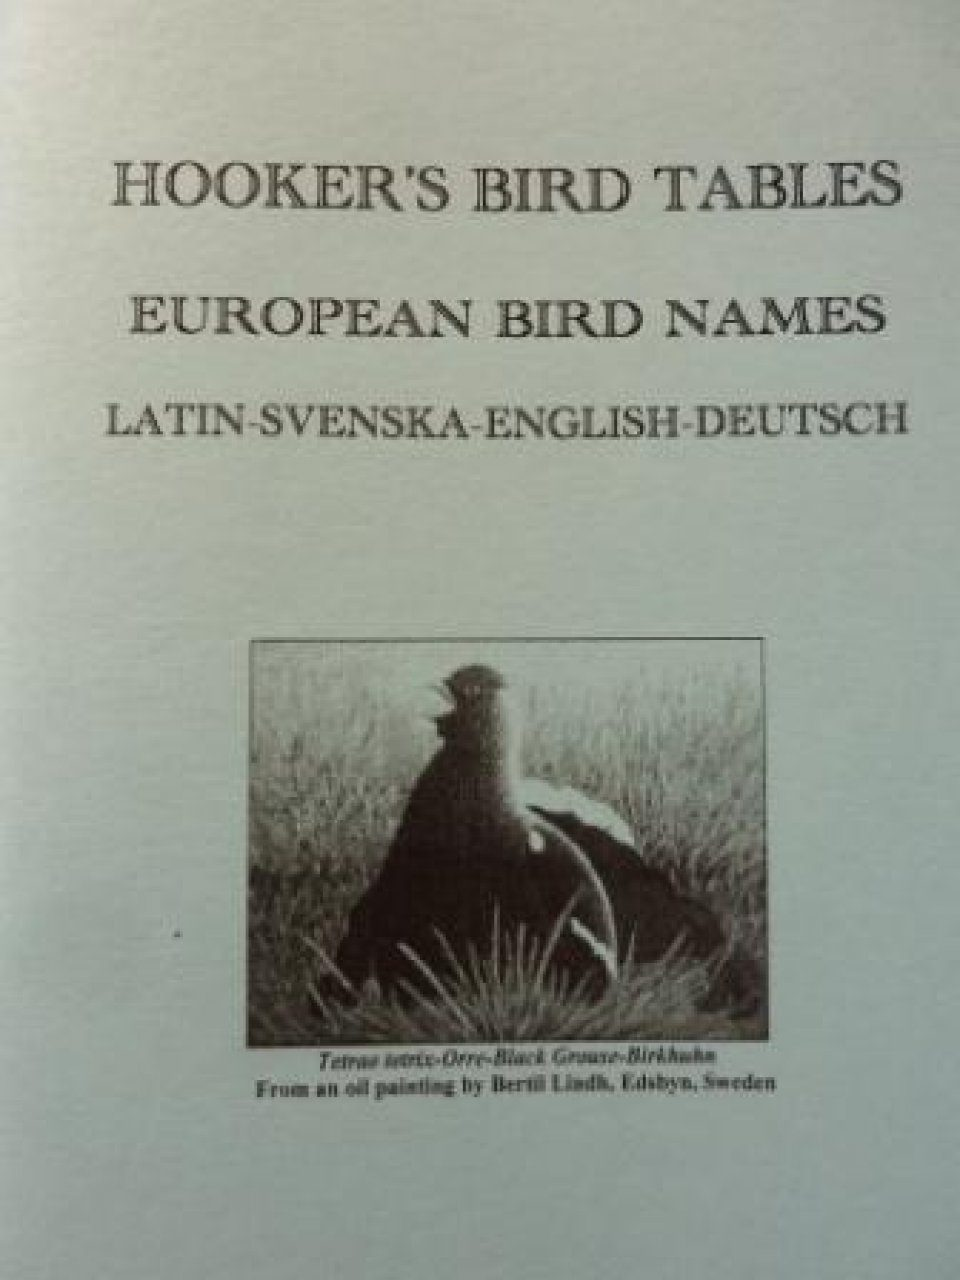 Hooker's Bird Tables: European Birds: Latin-Svenska-English-Deutsch